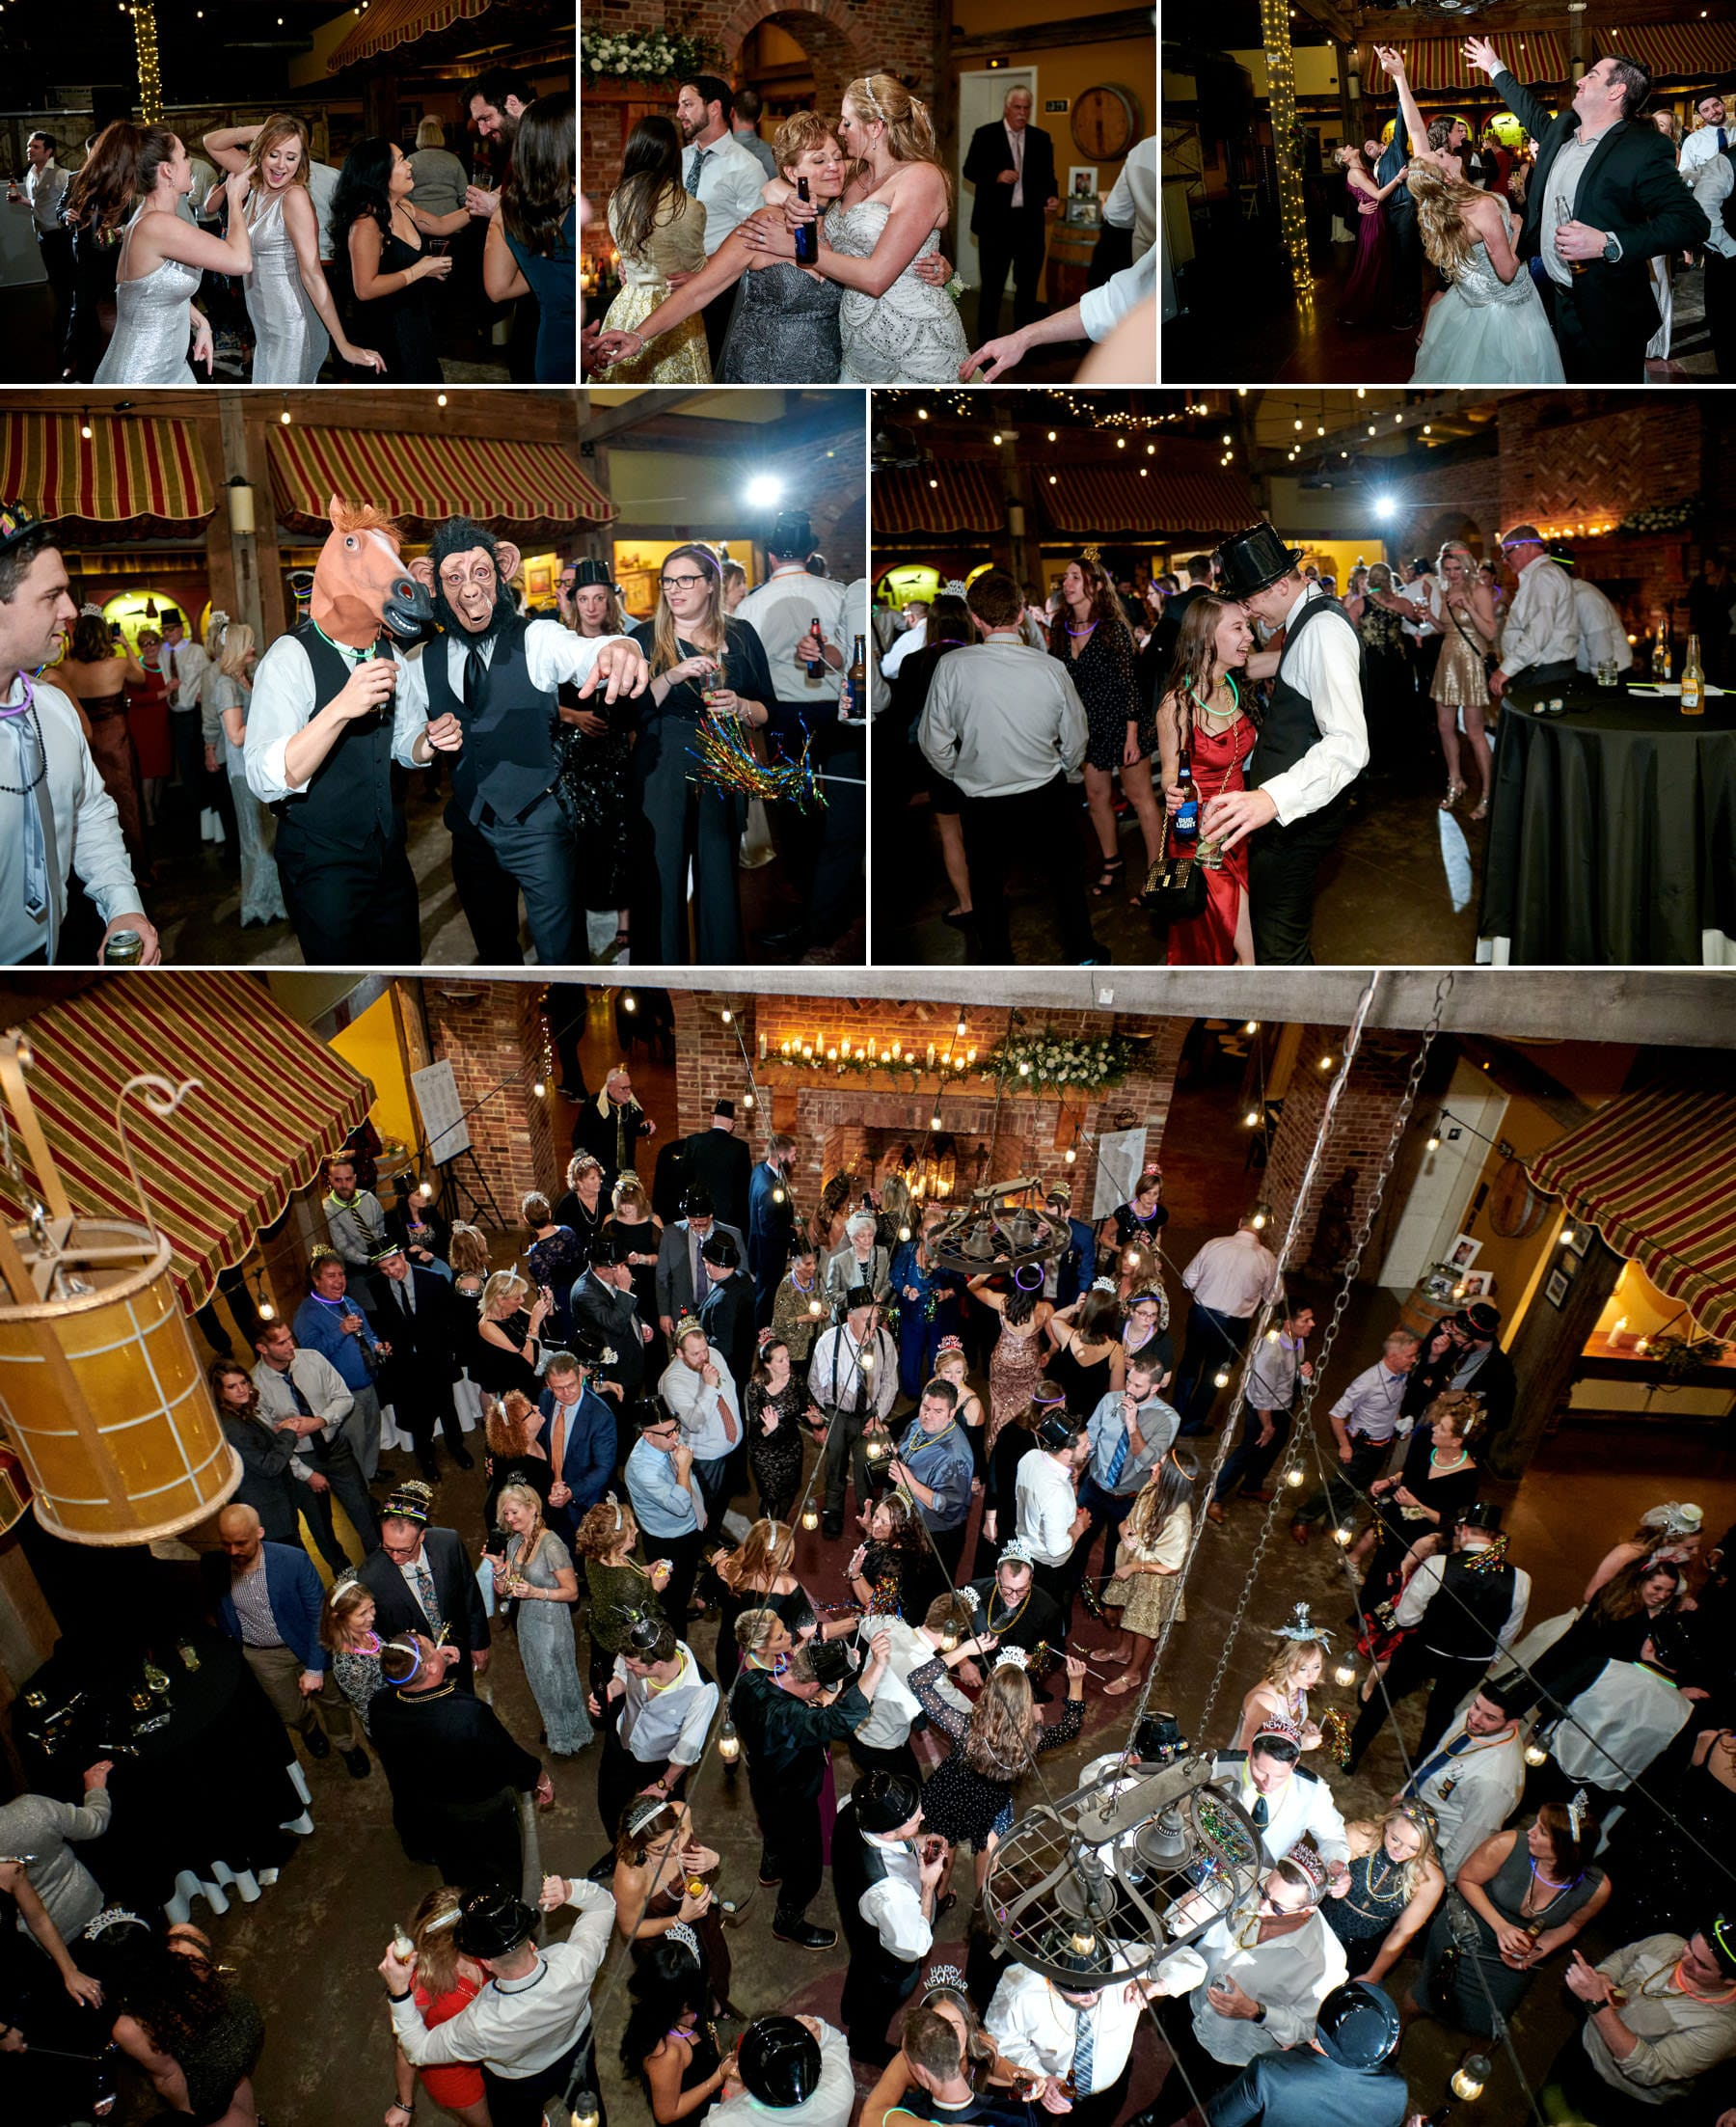 wedding dancing photos at laurita winery